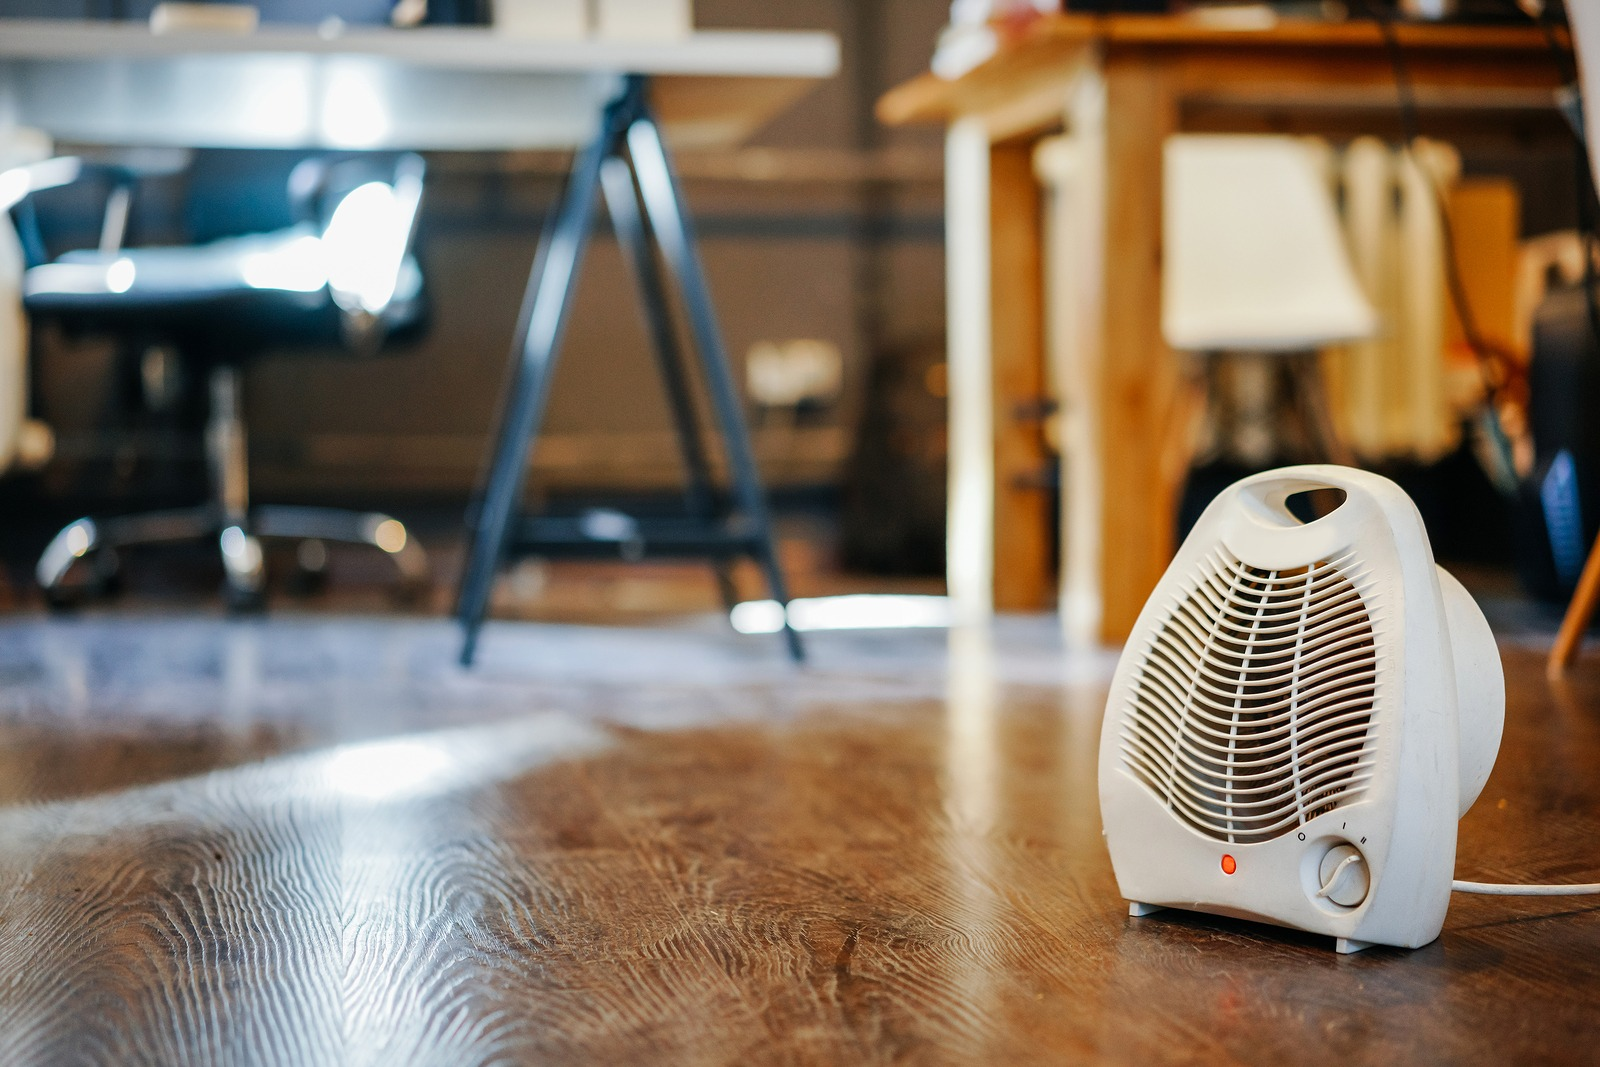 space heater safety, home safety, precautions